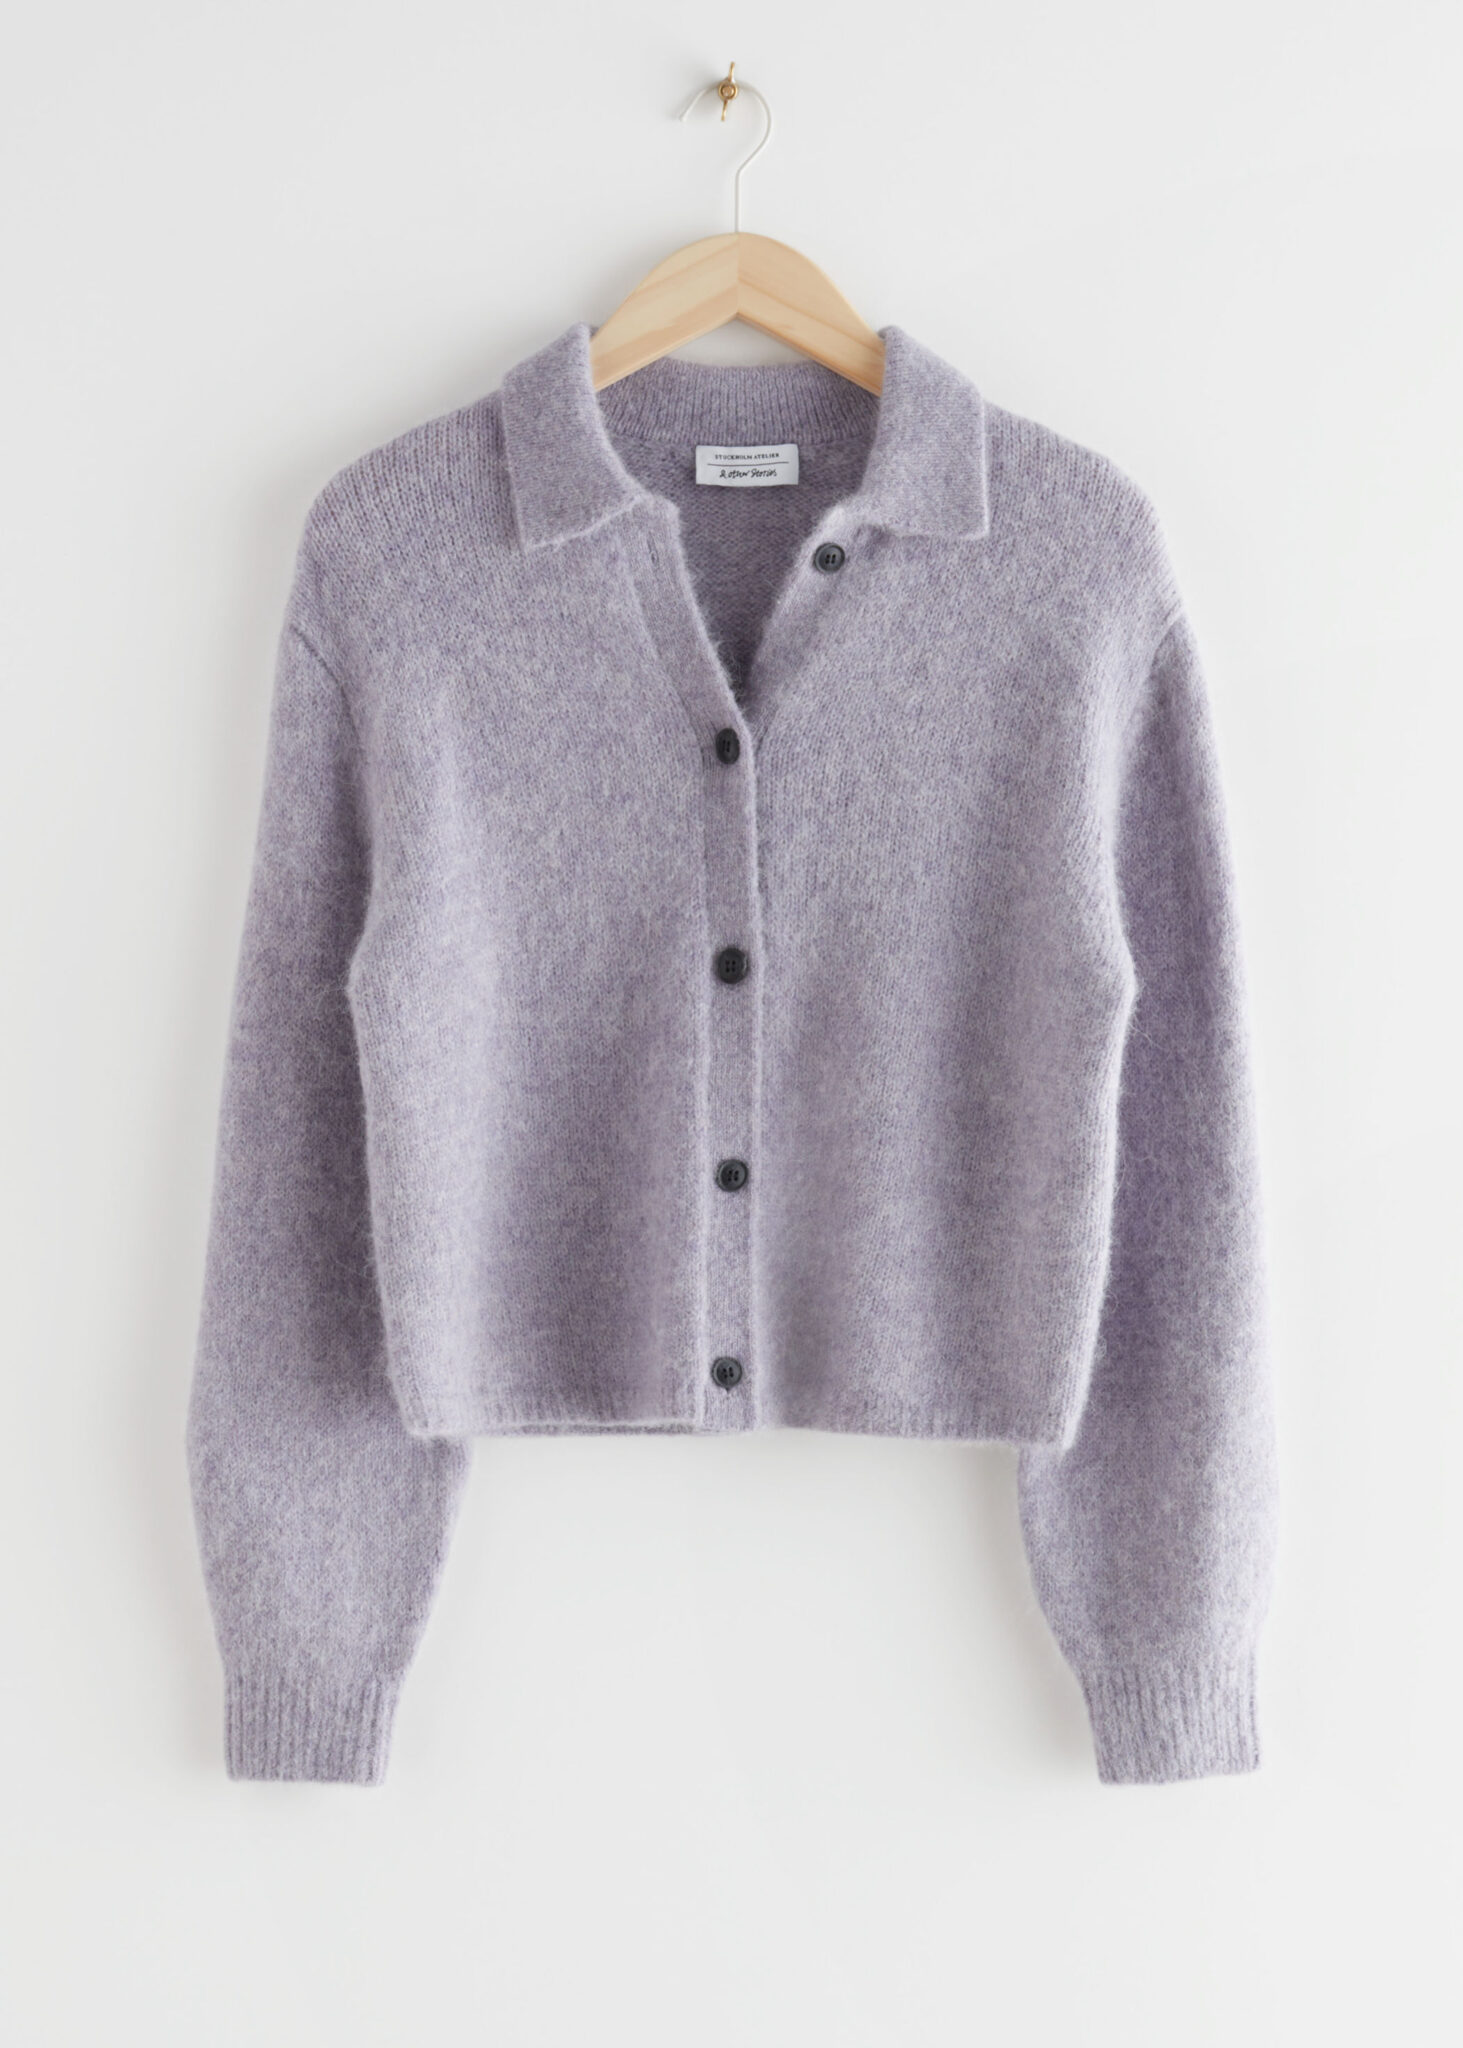 Collared Alpaca Blend Cardigan, & Other Stories, £65.00